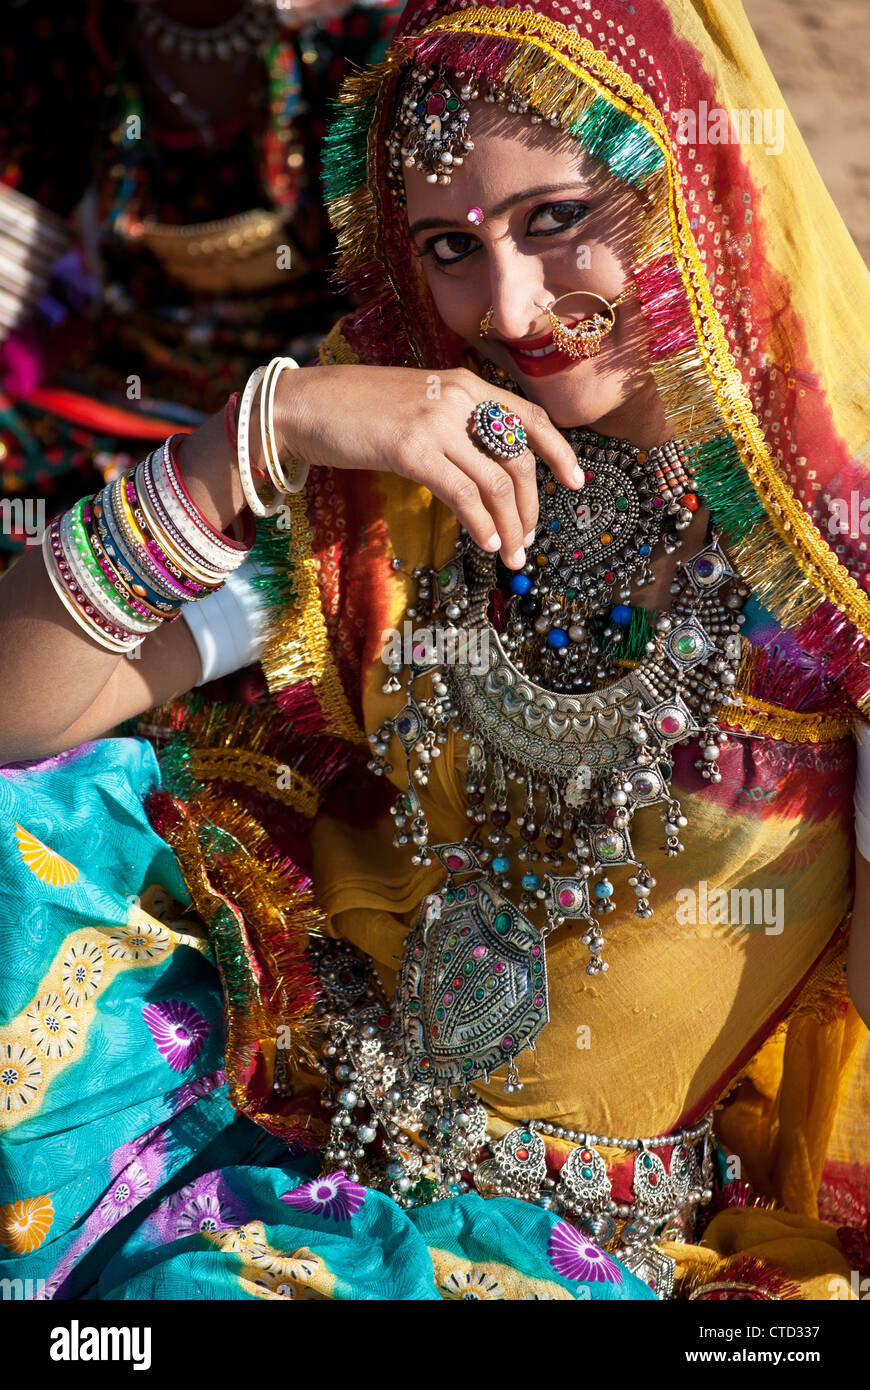 A beautiful Indian woman with traditional ornaments and dresses at Pushkar fair,Rajastan,India. Stock Photo